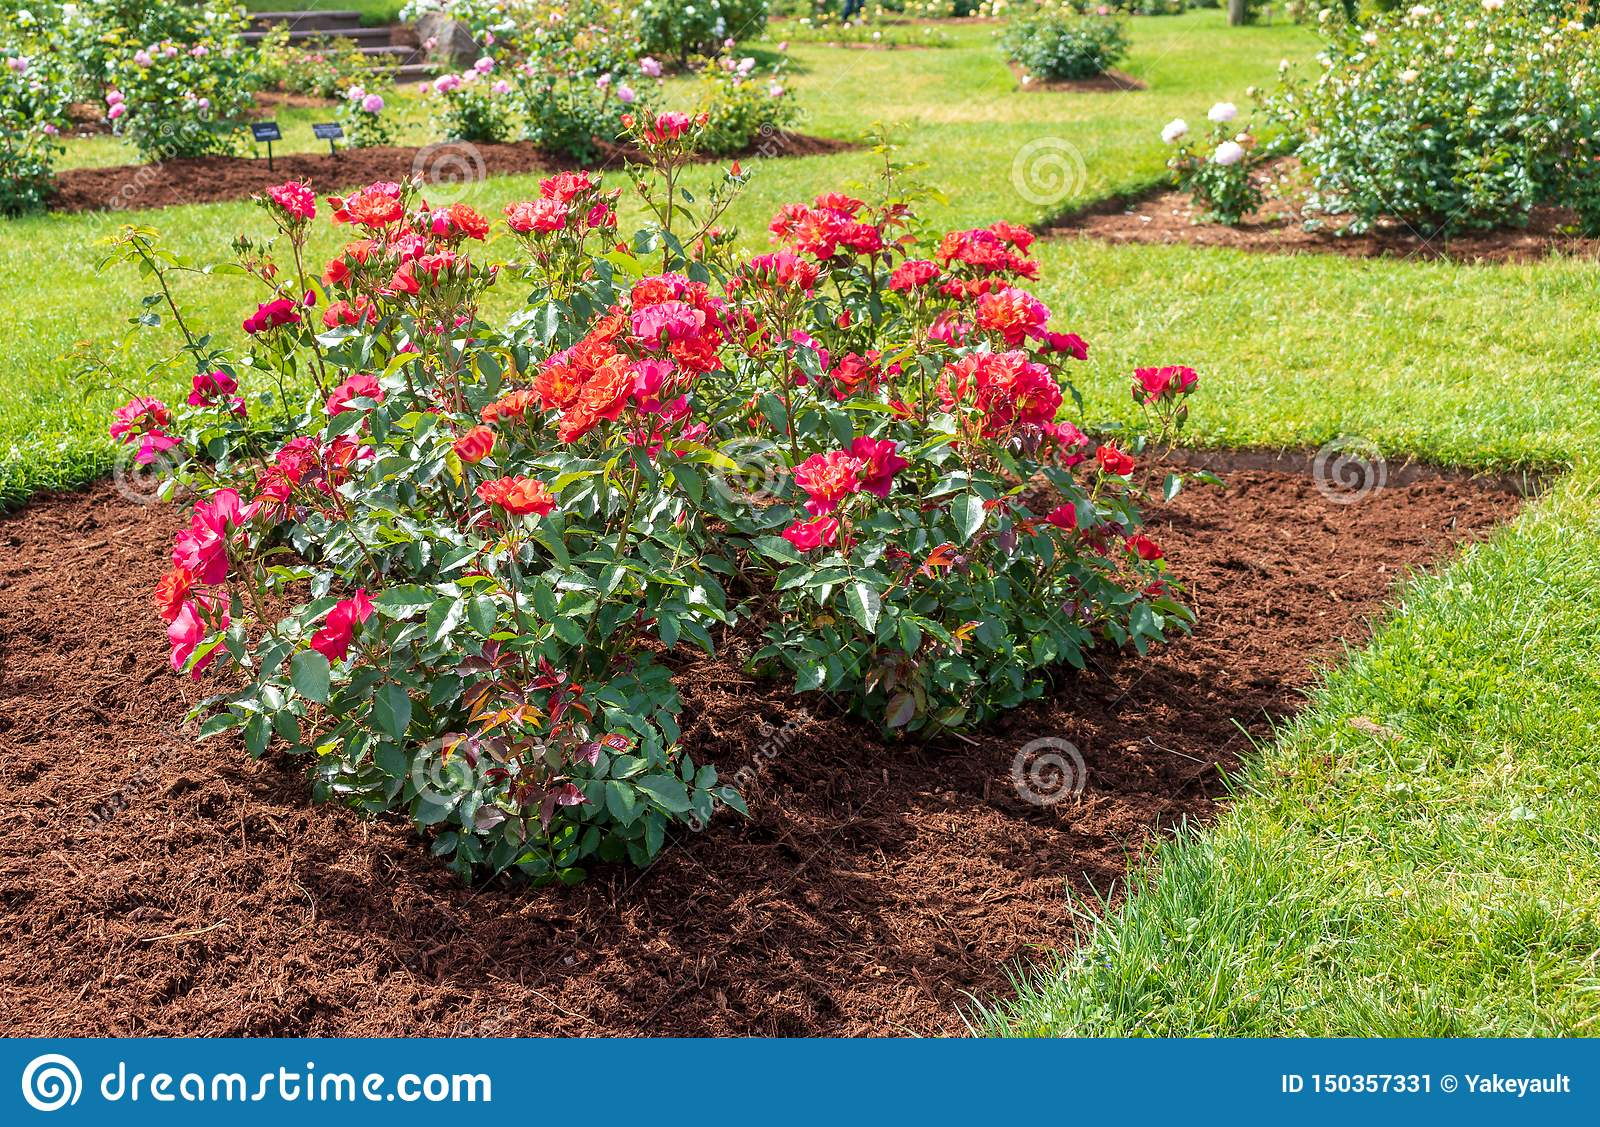 `Cinco de Mayo` rose blooms in a mulched flower bed